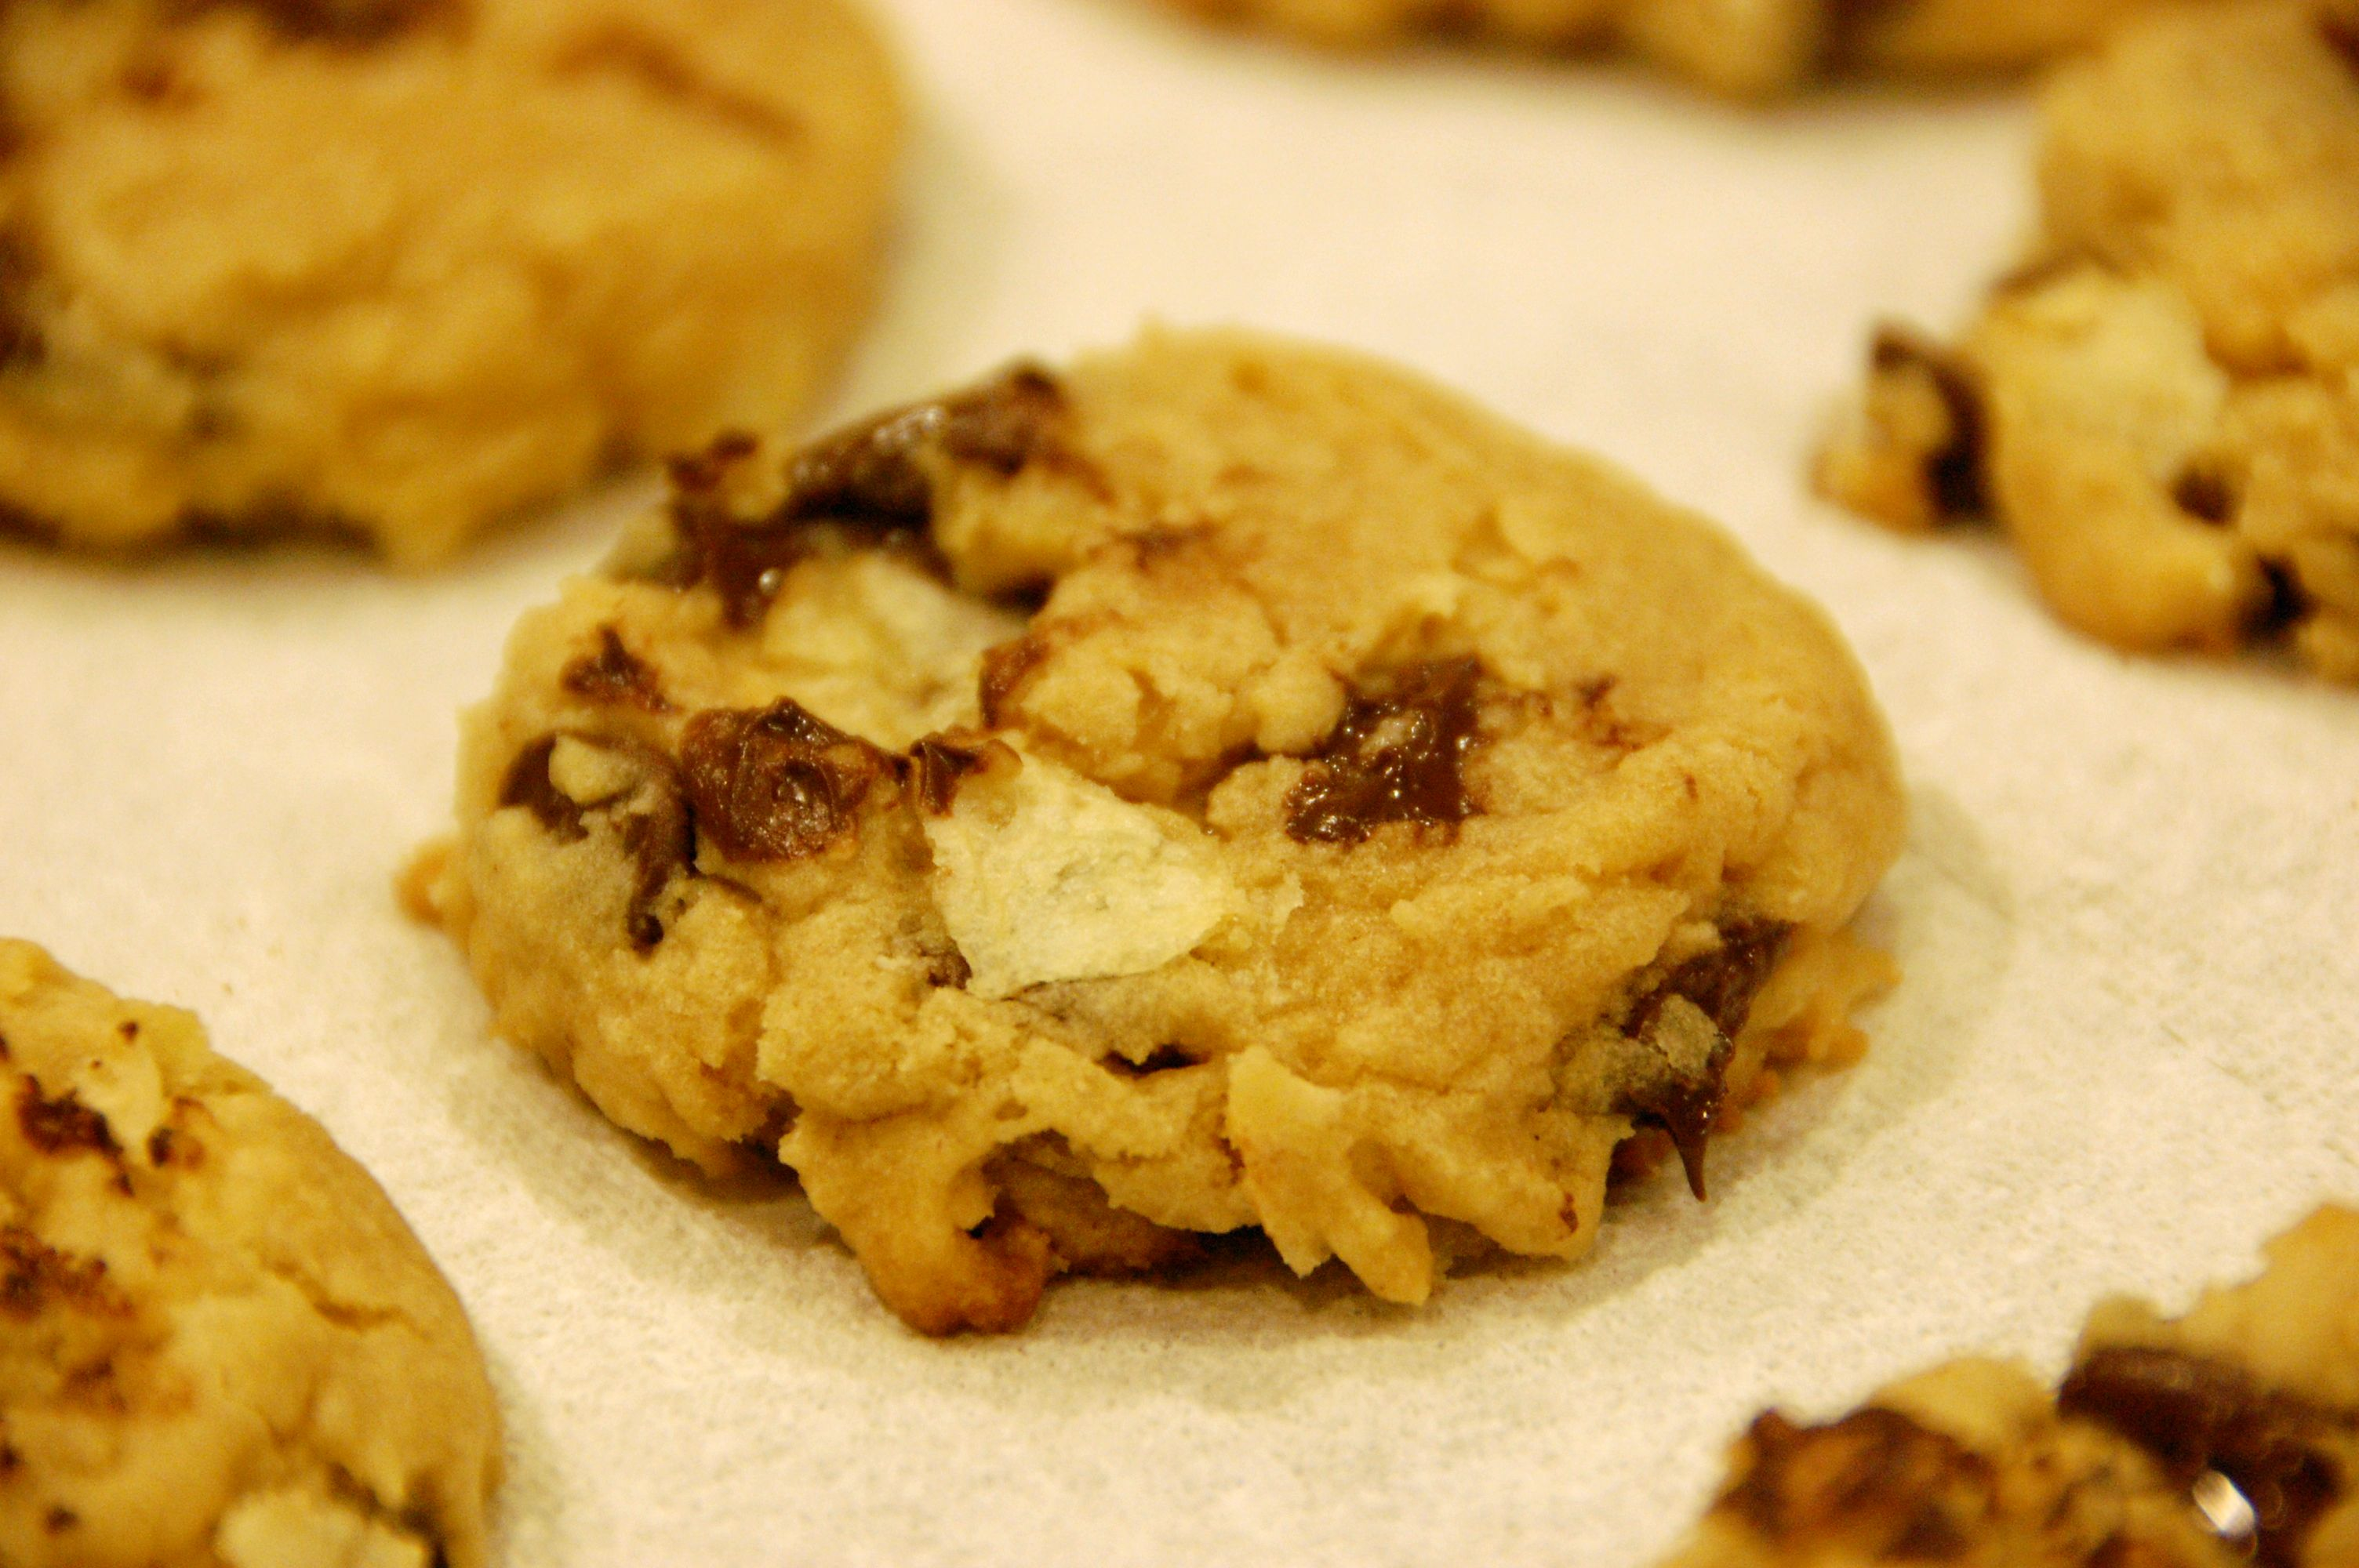 Potato Chocolate Chip Cookies Chocolate Chip Cookies With